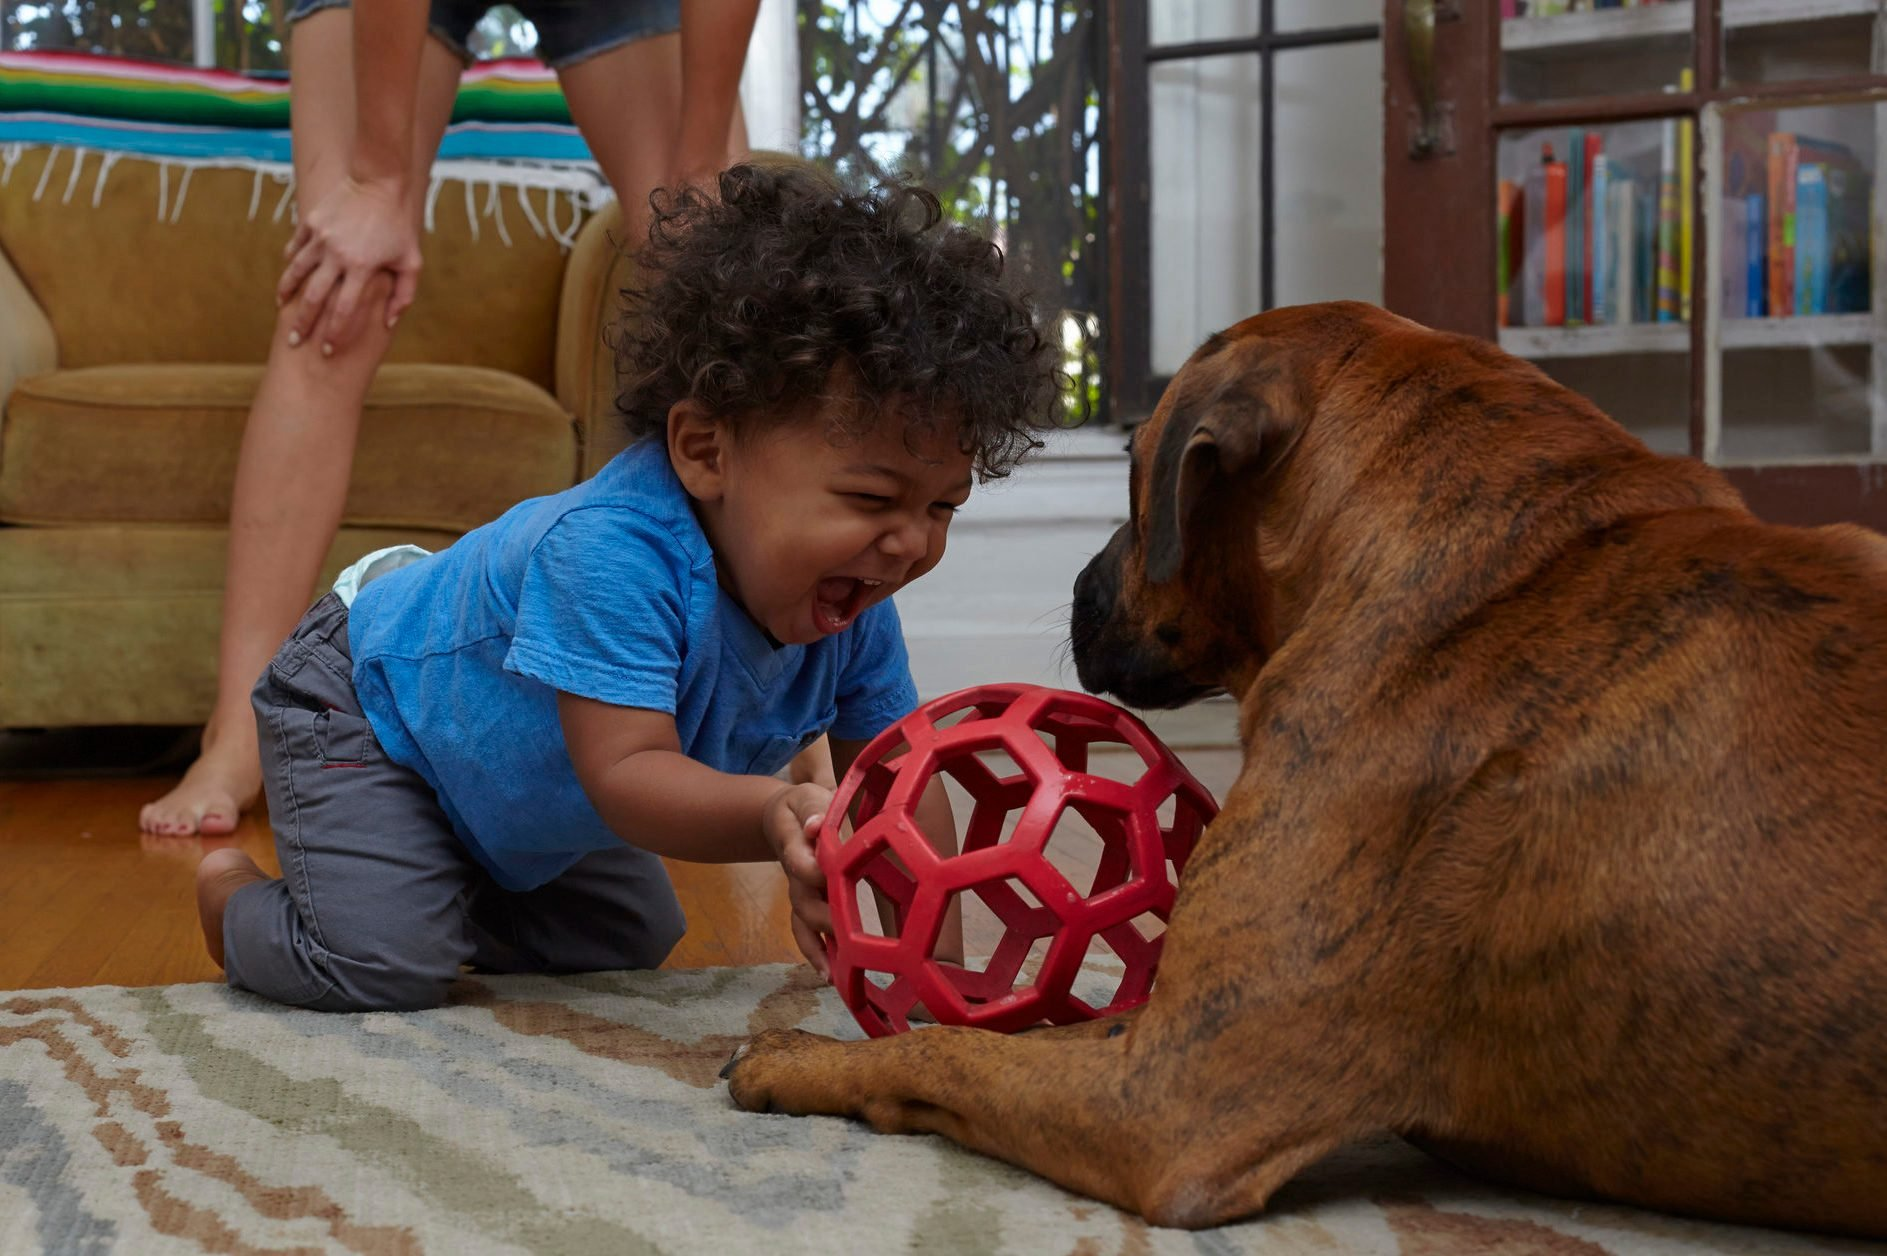 Male toddler playing with dog on sitting room floor